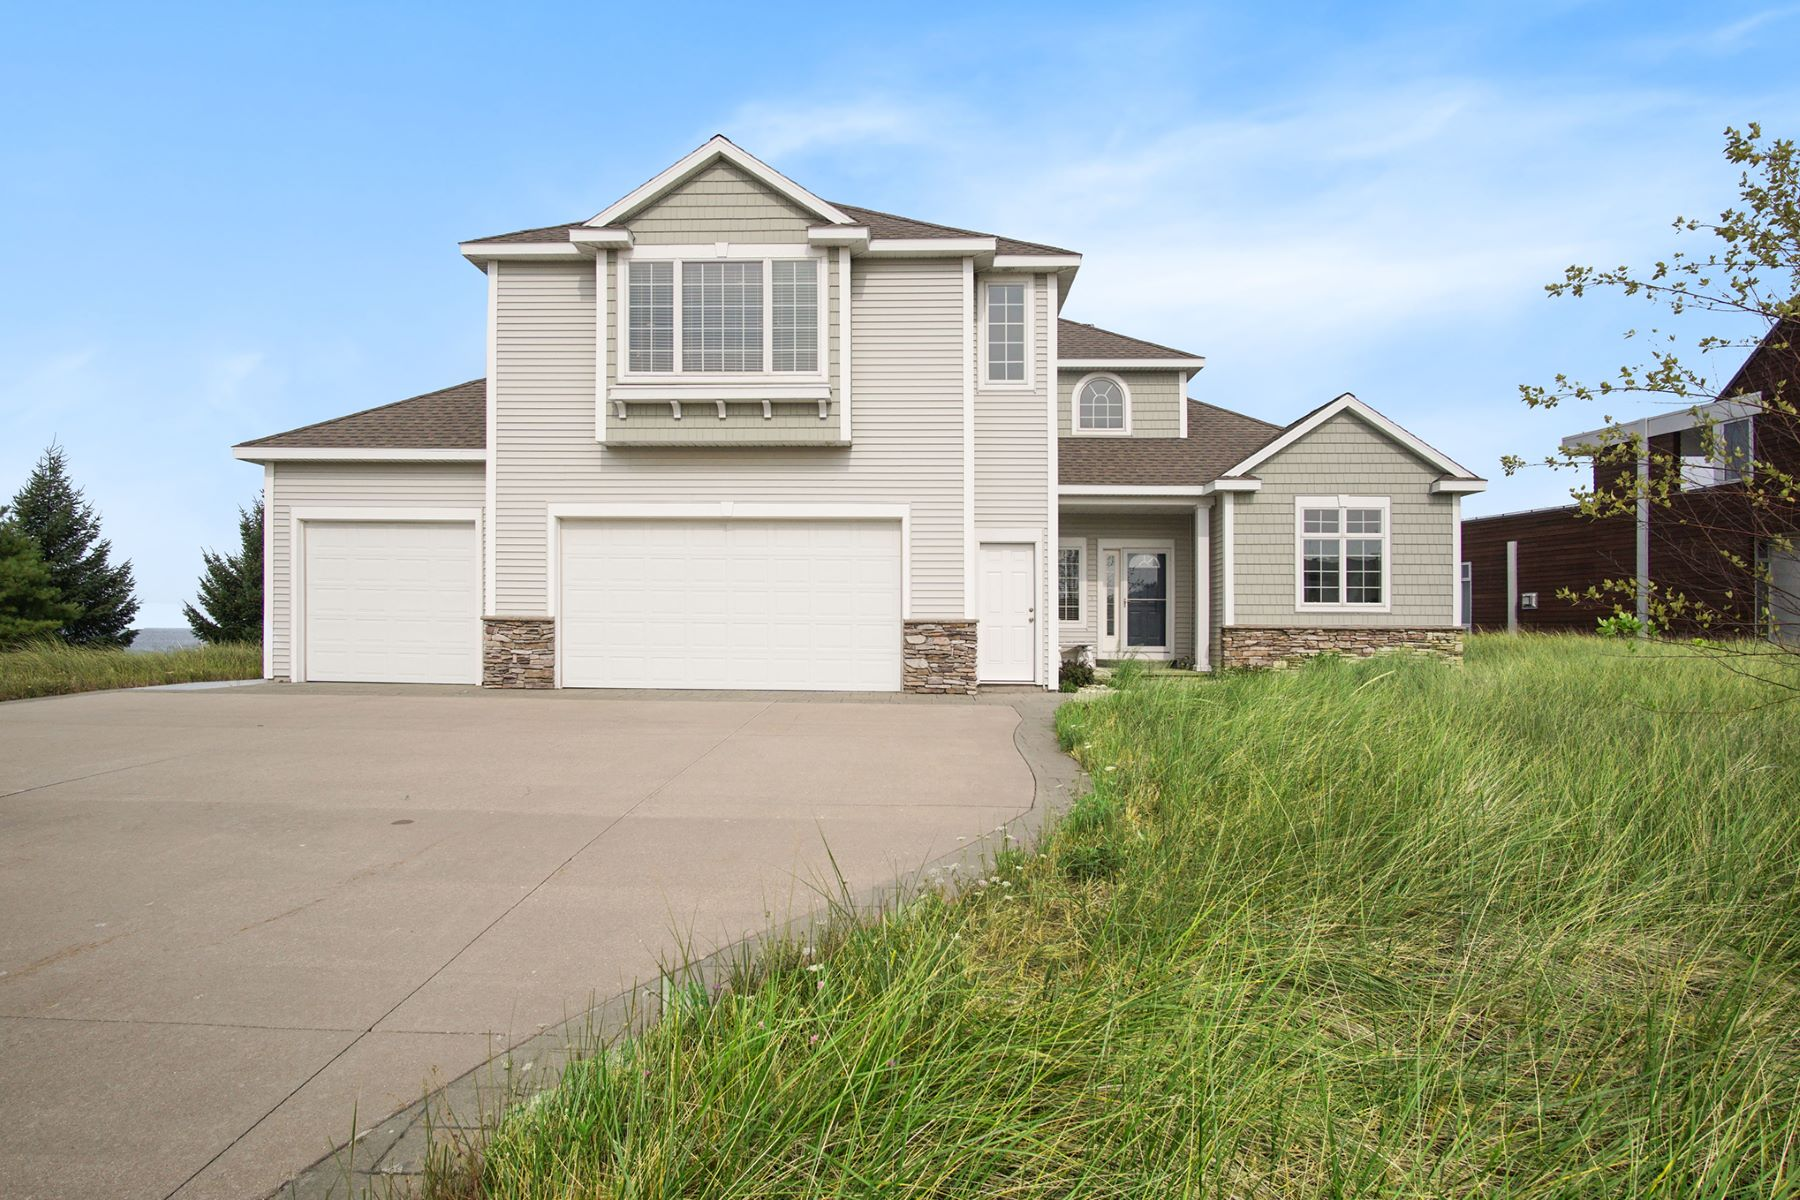 Single Family Homes for Sale at Lake Michigan Beachfront Home 324 Dunes Drive Manistee, Michigan 49660 United States